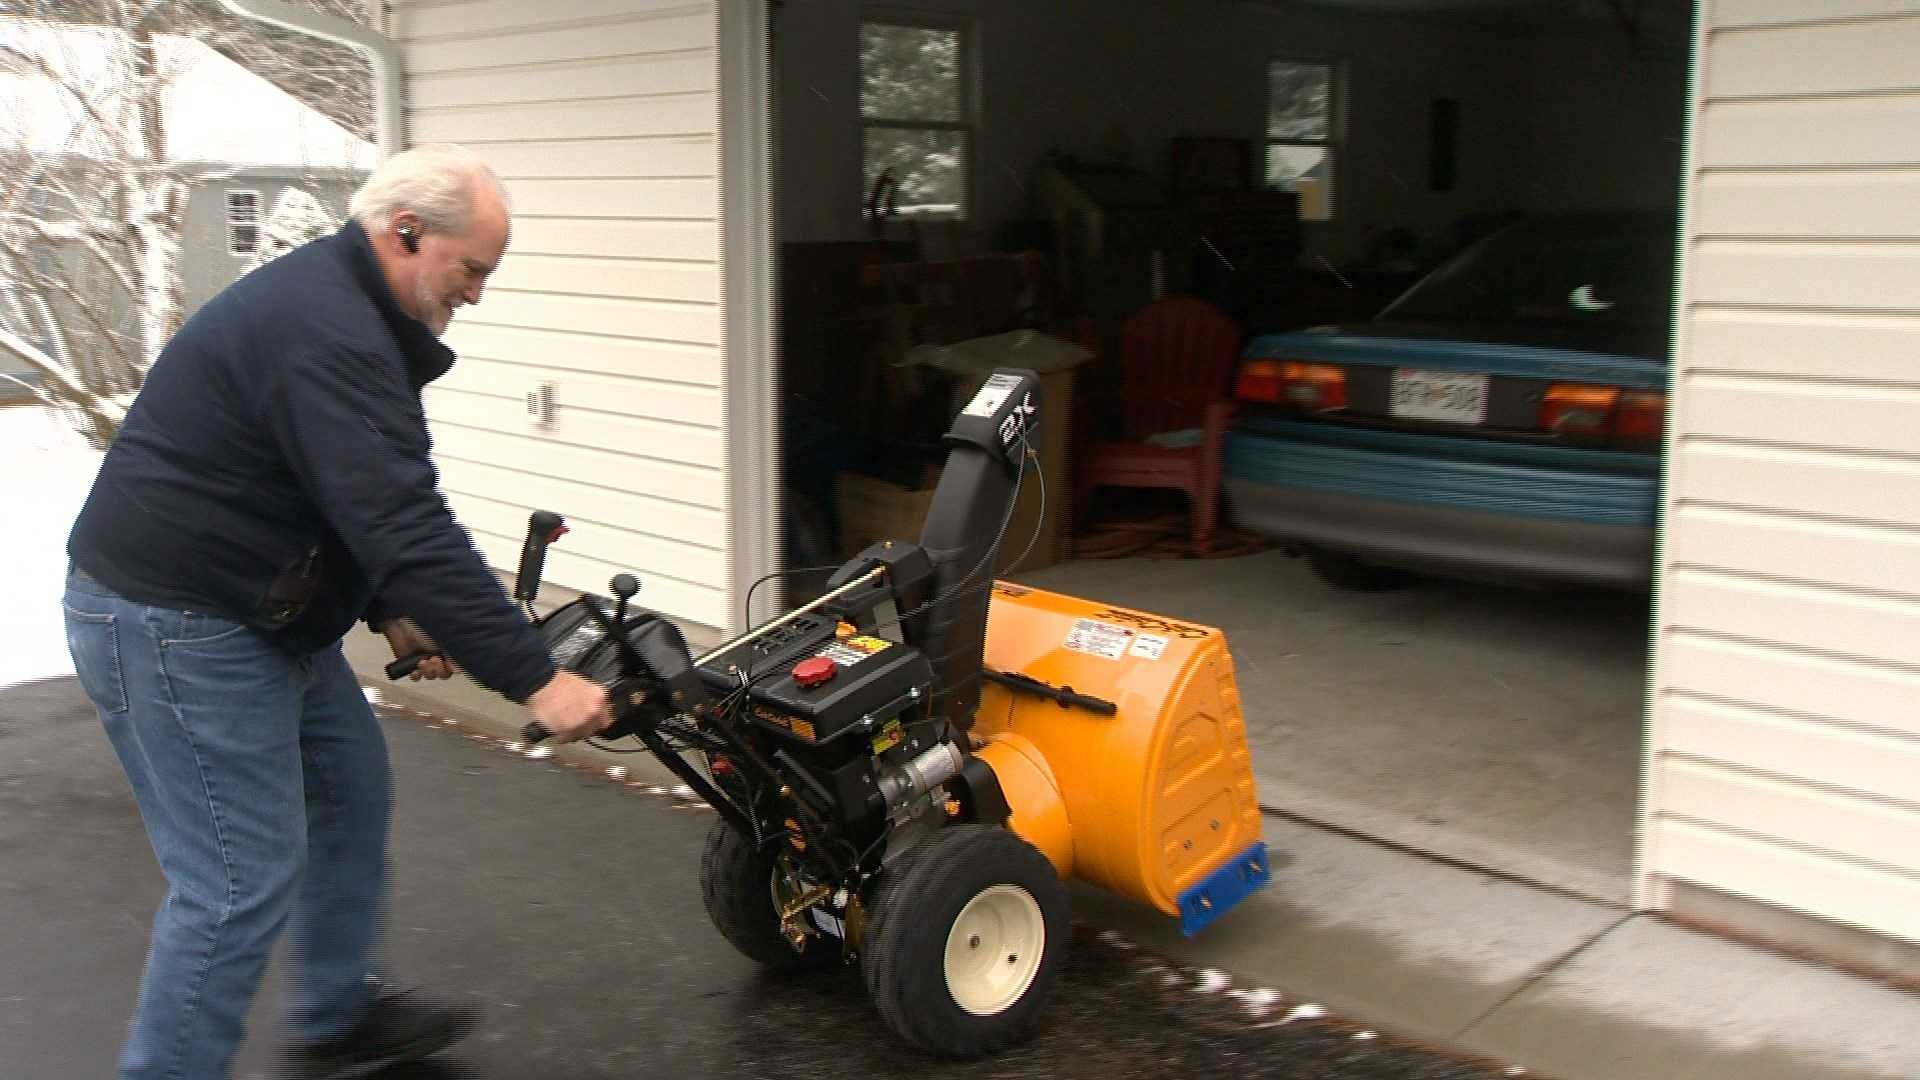 John Zacharais, of Westminster, is hoping he put his newly-bought snowblower away for the last time this season after a light snow blanketed the area Friday.